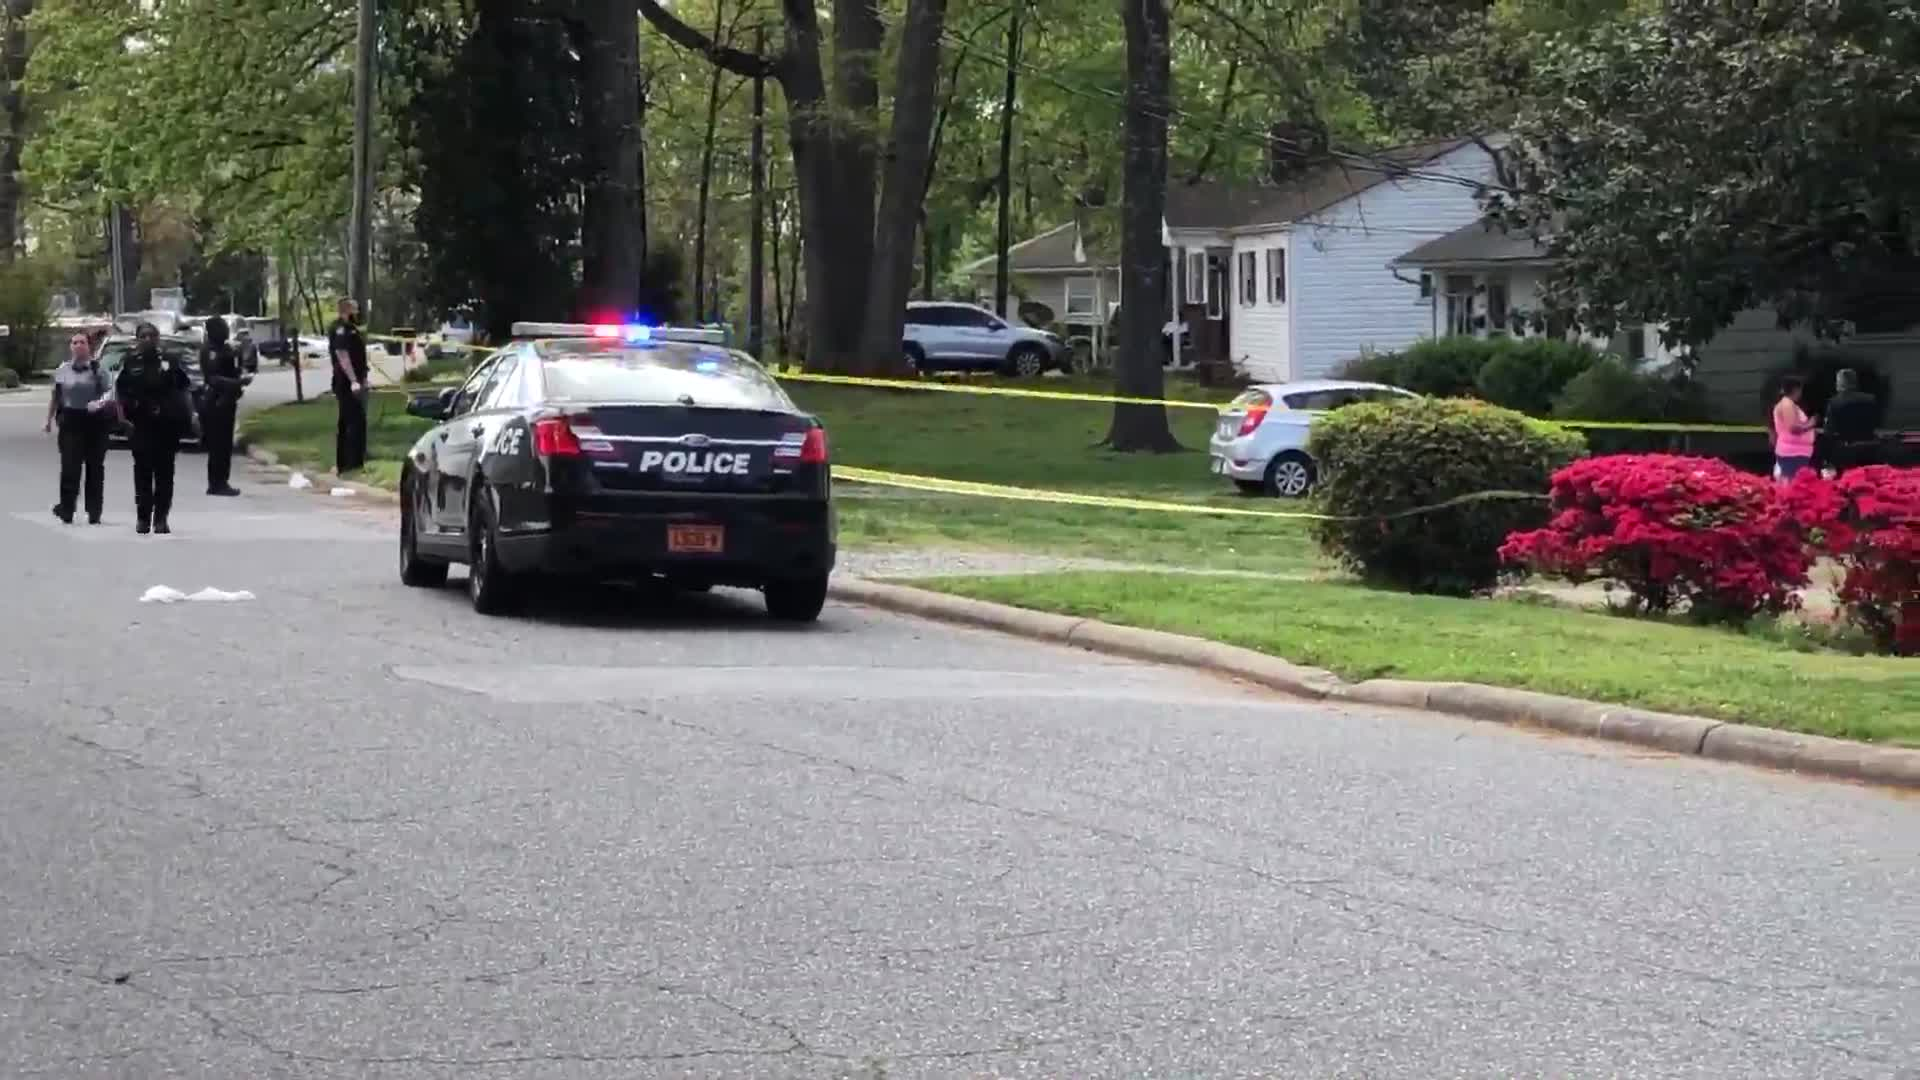 Police on scene of aggravated assault on Wildwood Drive in Greensboro.